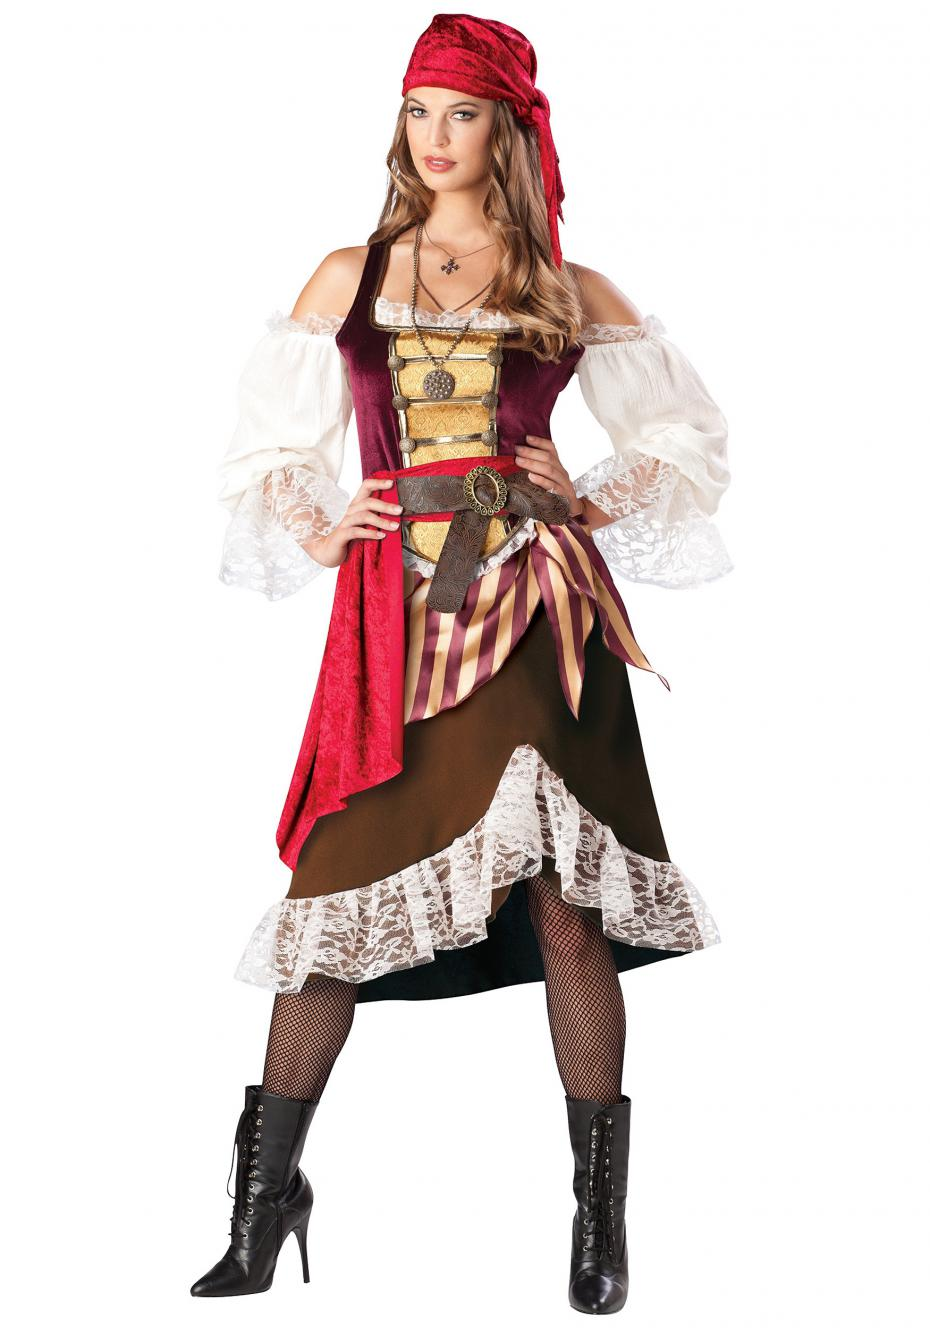 2016 New Womens Deckhand Darlin Pirate Costume,Deluxe Lady Caribbean  Swashbuckling Sexy Pirate Wench fancy Dress Costume B1103